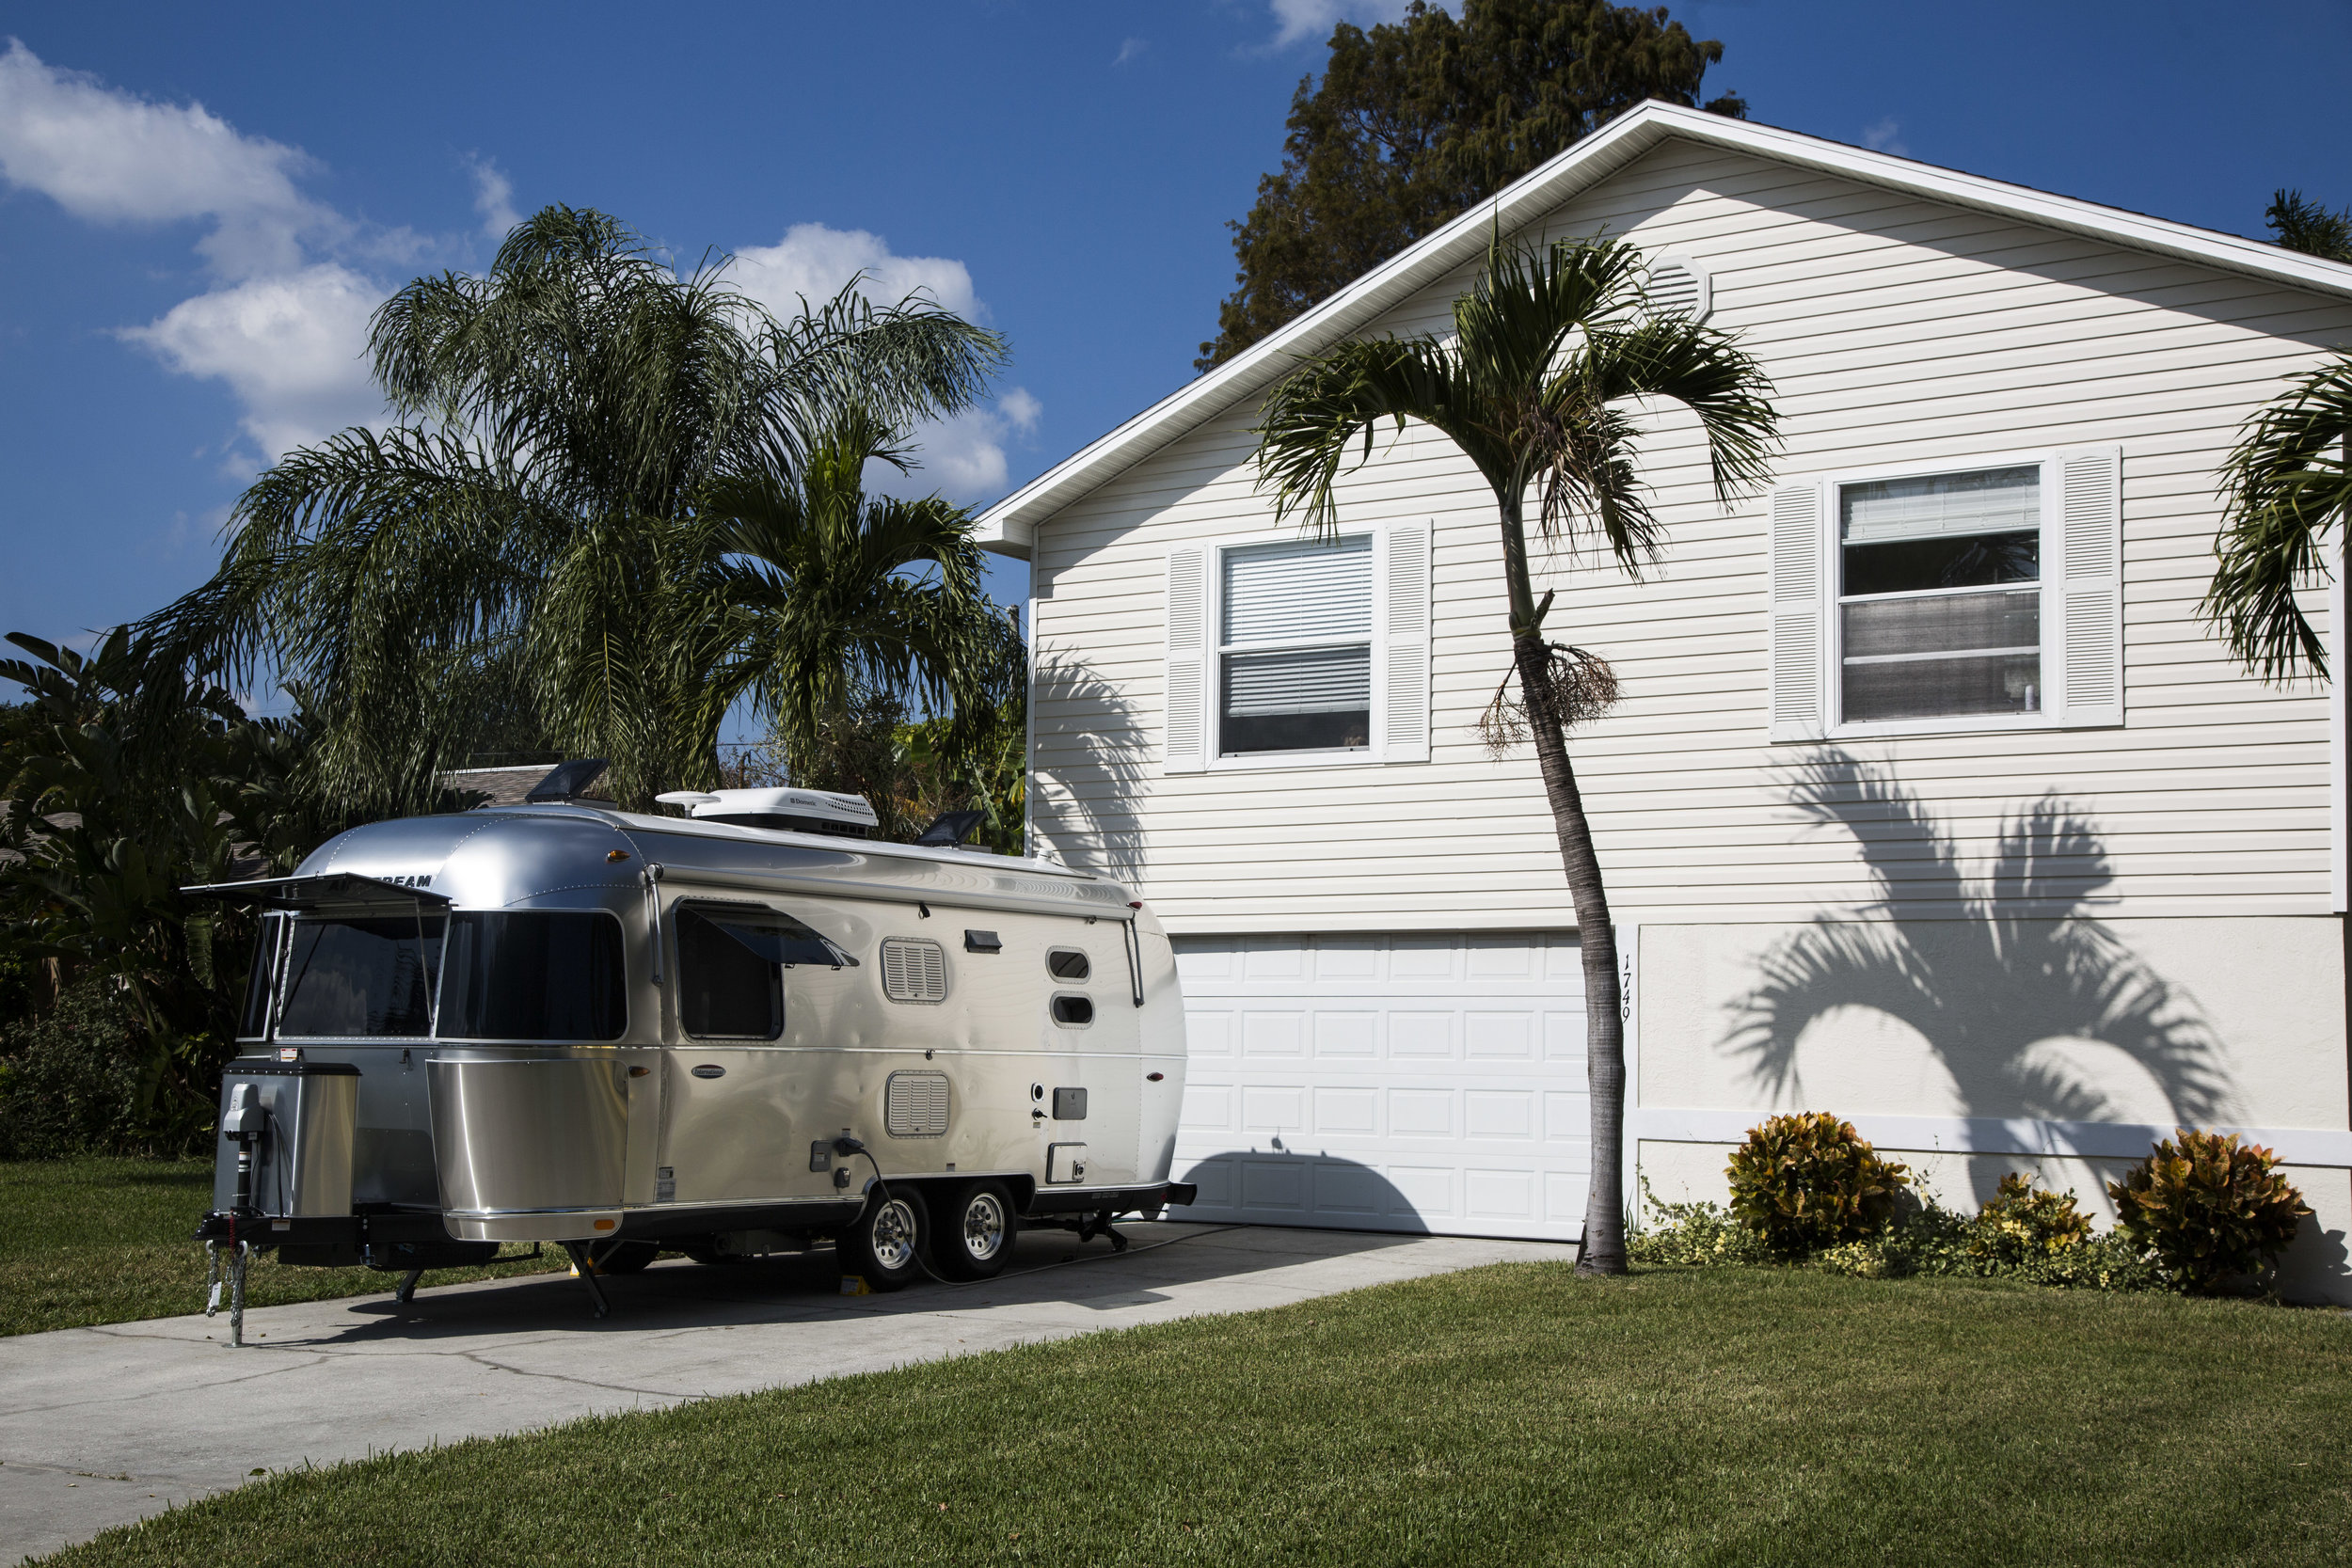 The GuestWings suite may look like an Airstream™ camper, but our units don't go camping. So they are kept spotlessly clean and feature the all the comforts of a nice hotel room.